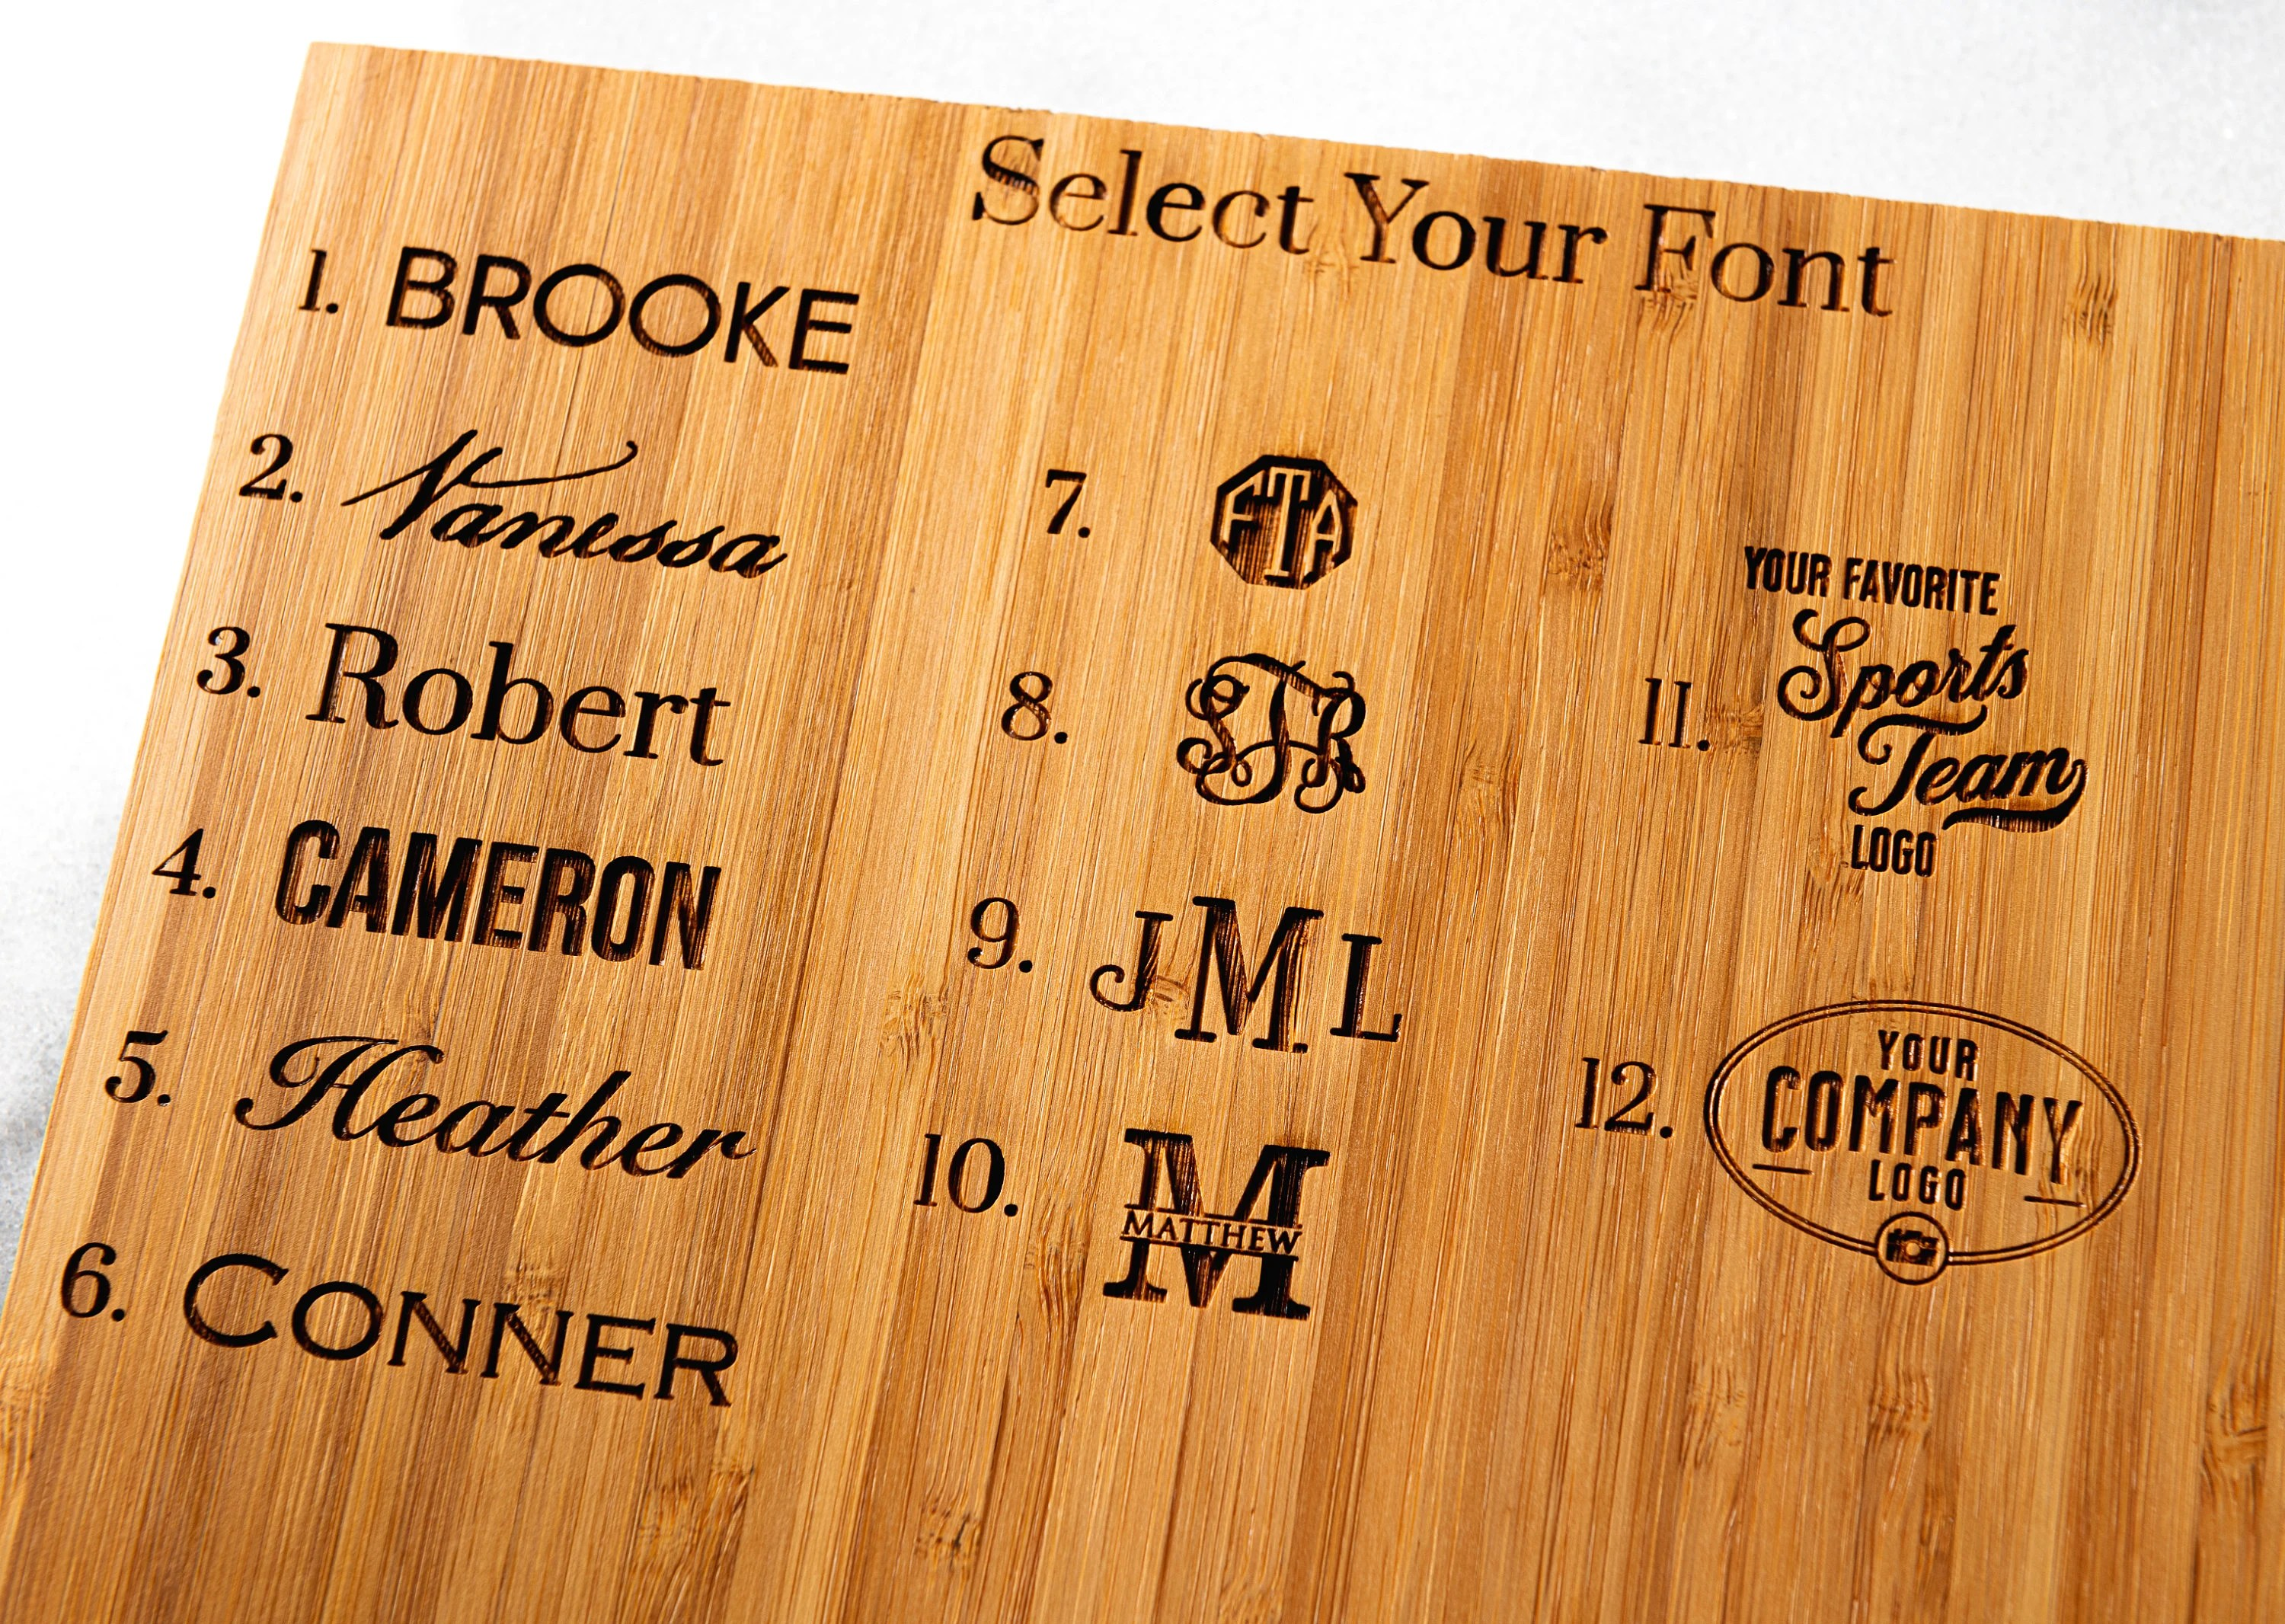 Personalized Leather Passport Cover Holder by Left Coast image 1